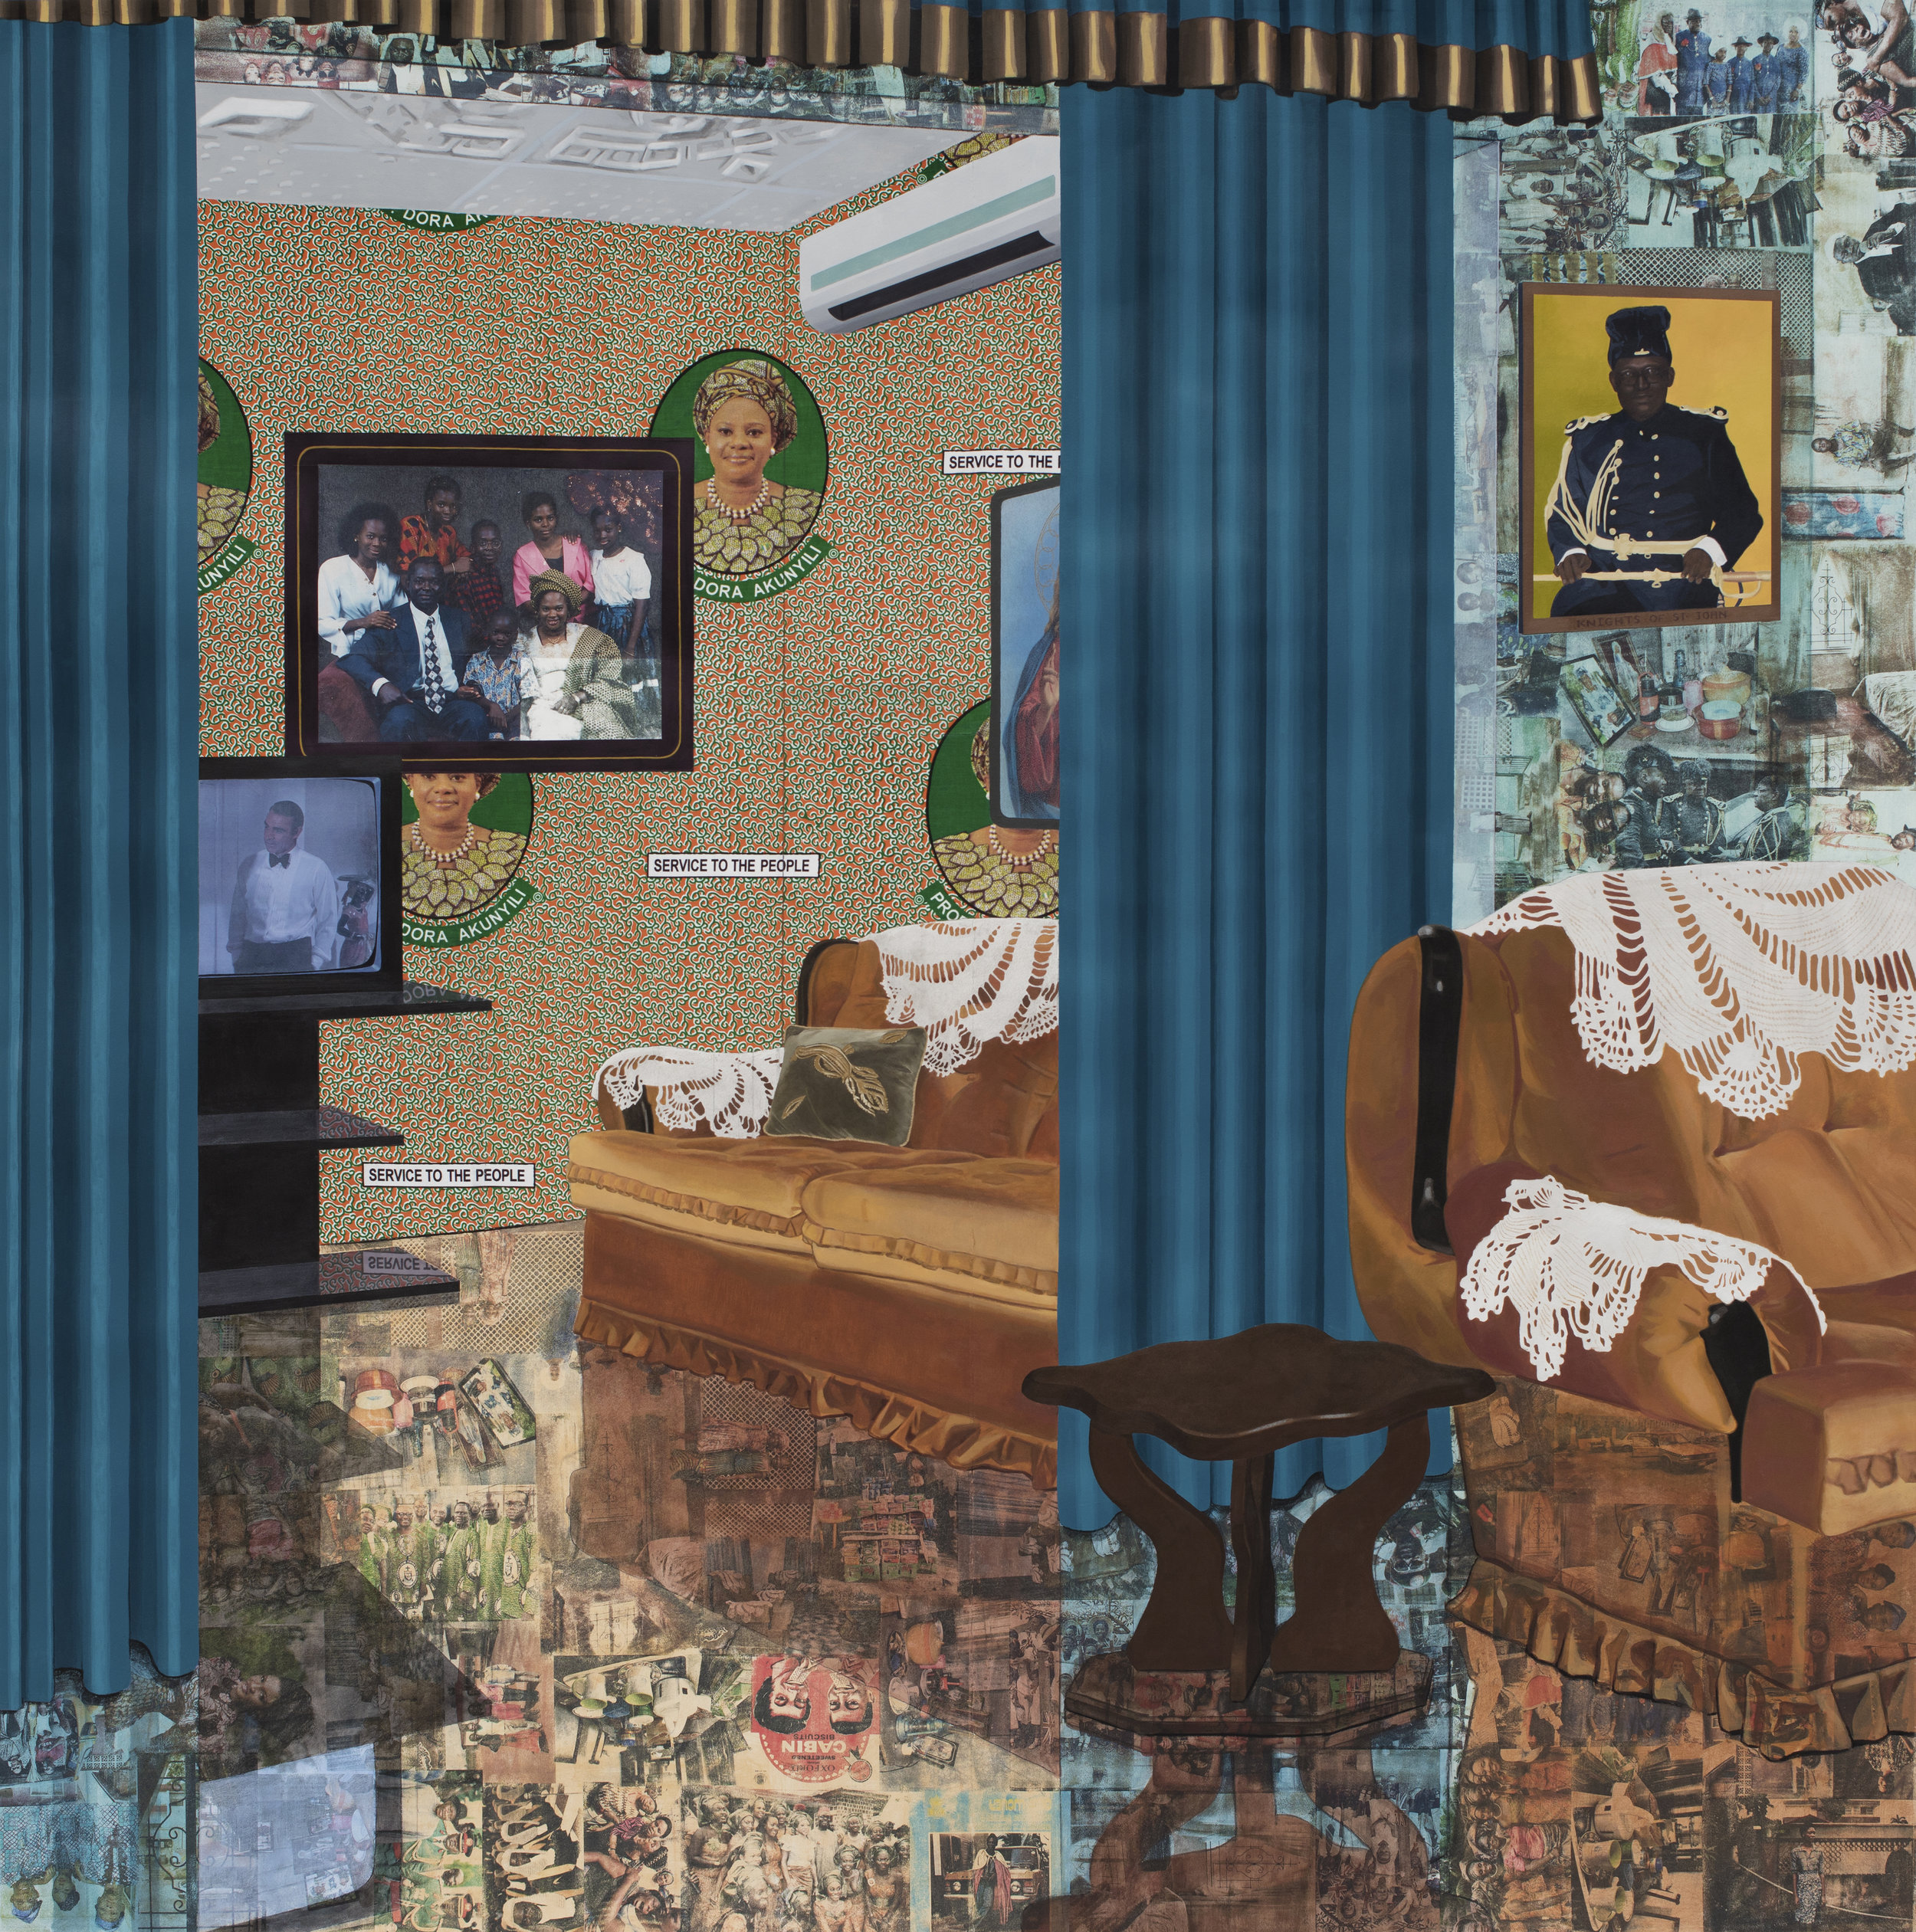 Njideka Akunyili Crosby. Home: As You See Me. 2017. © Njideka Akunyili Crosby. Courtesy the artist and Victoria Miro, London. Photography Brian Forrest.